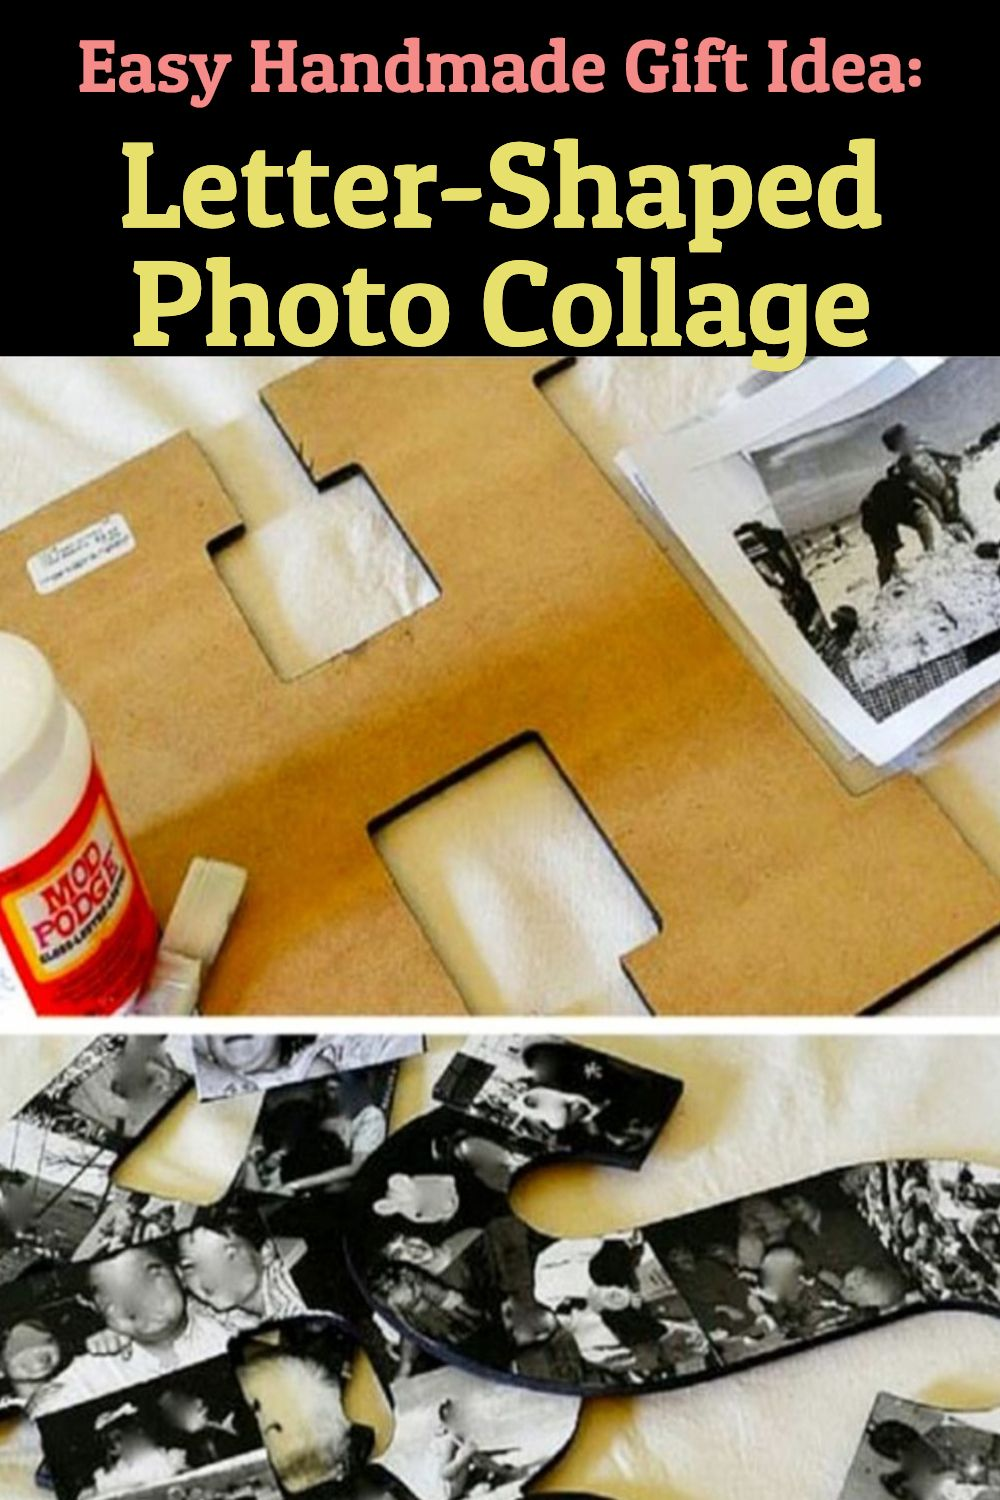 Easy Handmade Gift Idea: / Letter-Shaped Photo Collage